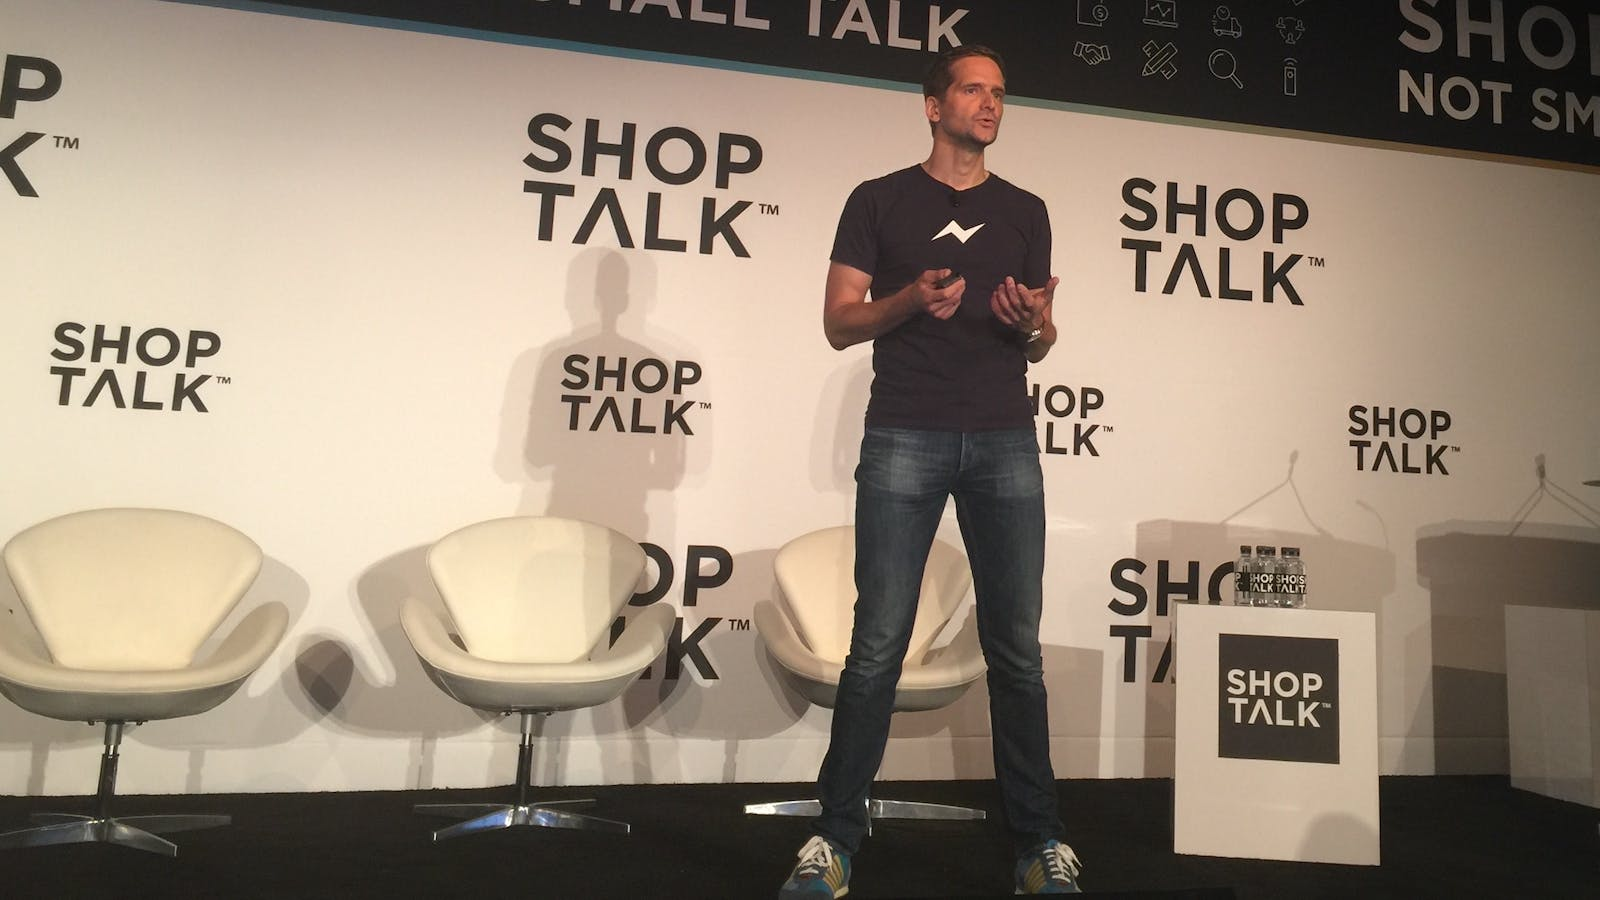 Frerk-Malte Feller, head of business and monetization at Facebook Messenger, speaking at a presentation at the Shoptalk e-commerce conference this month. Photo by Cory Weinberg.